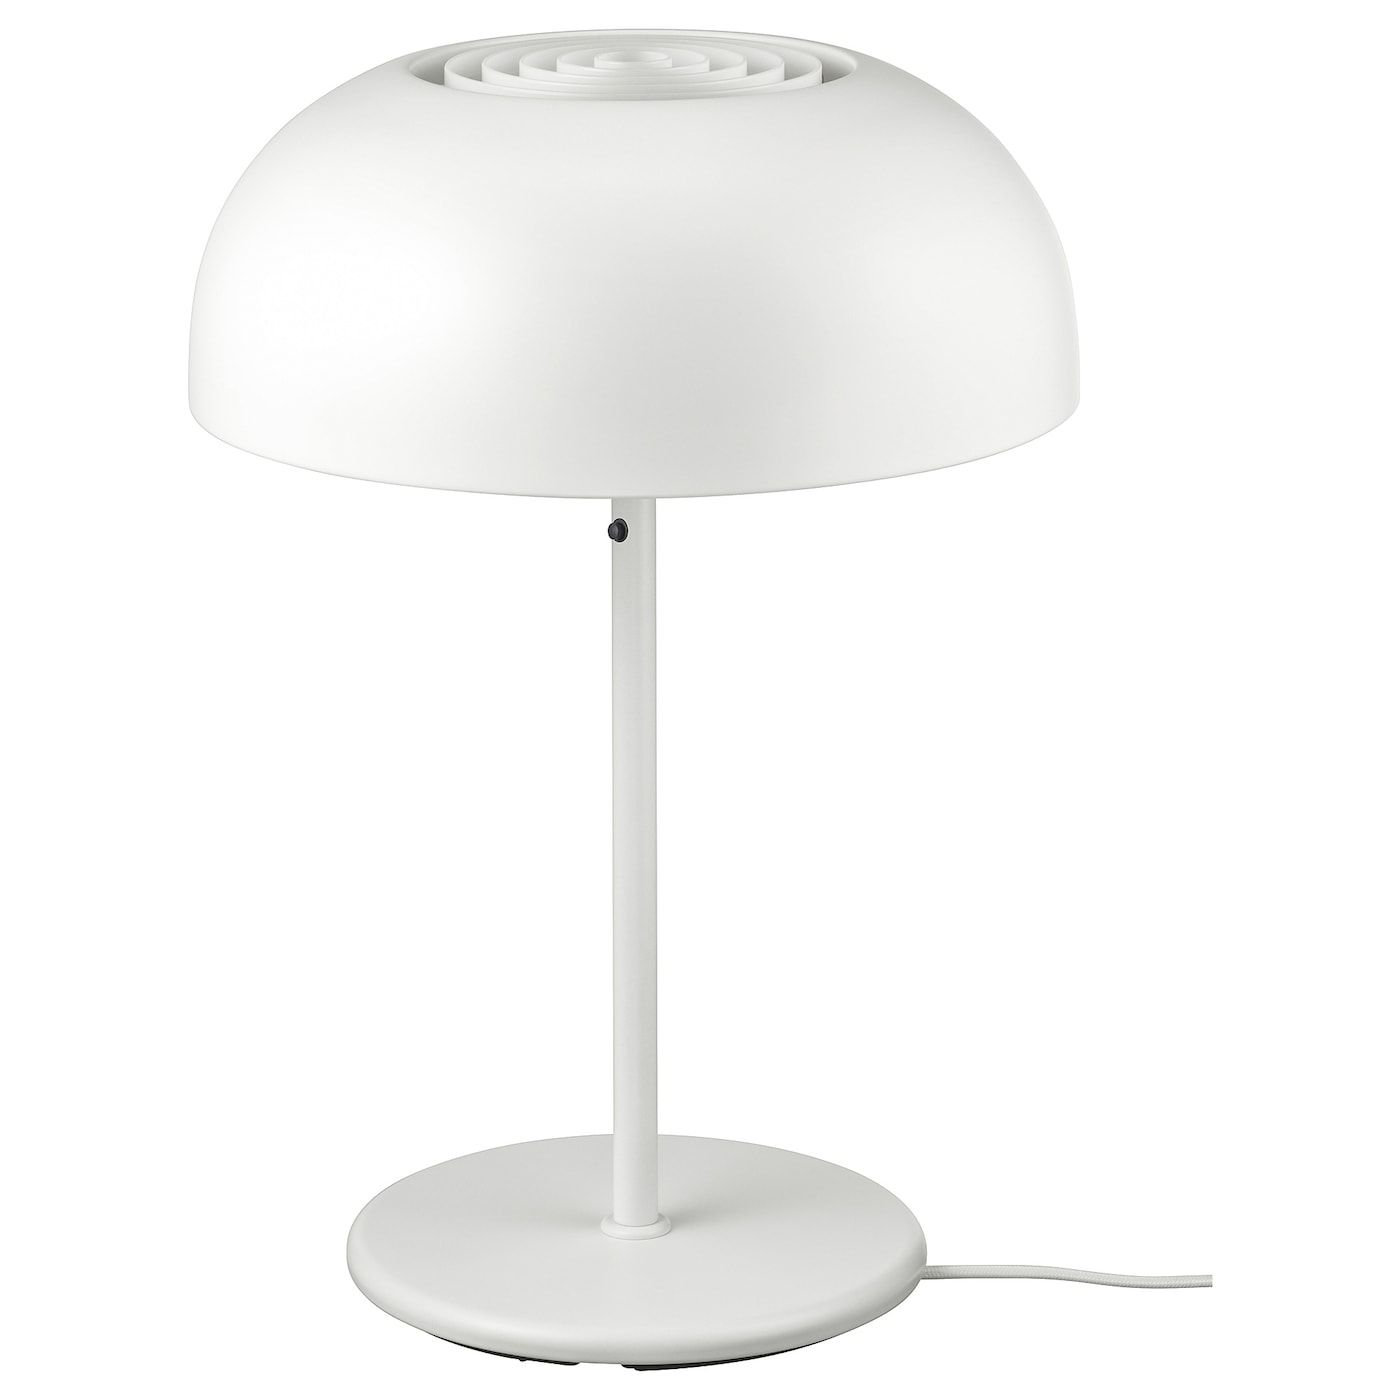 Nymane White Table Lamp Ikea In 2020 Table Lamp Lamp White Table Lamp